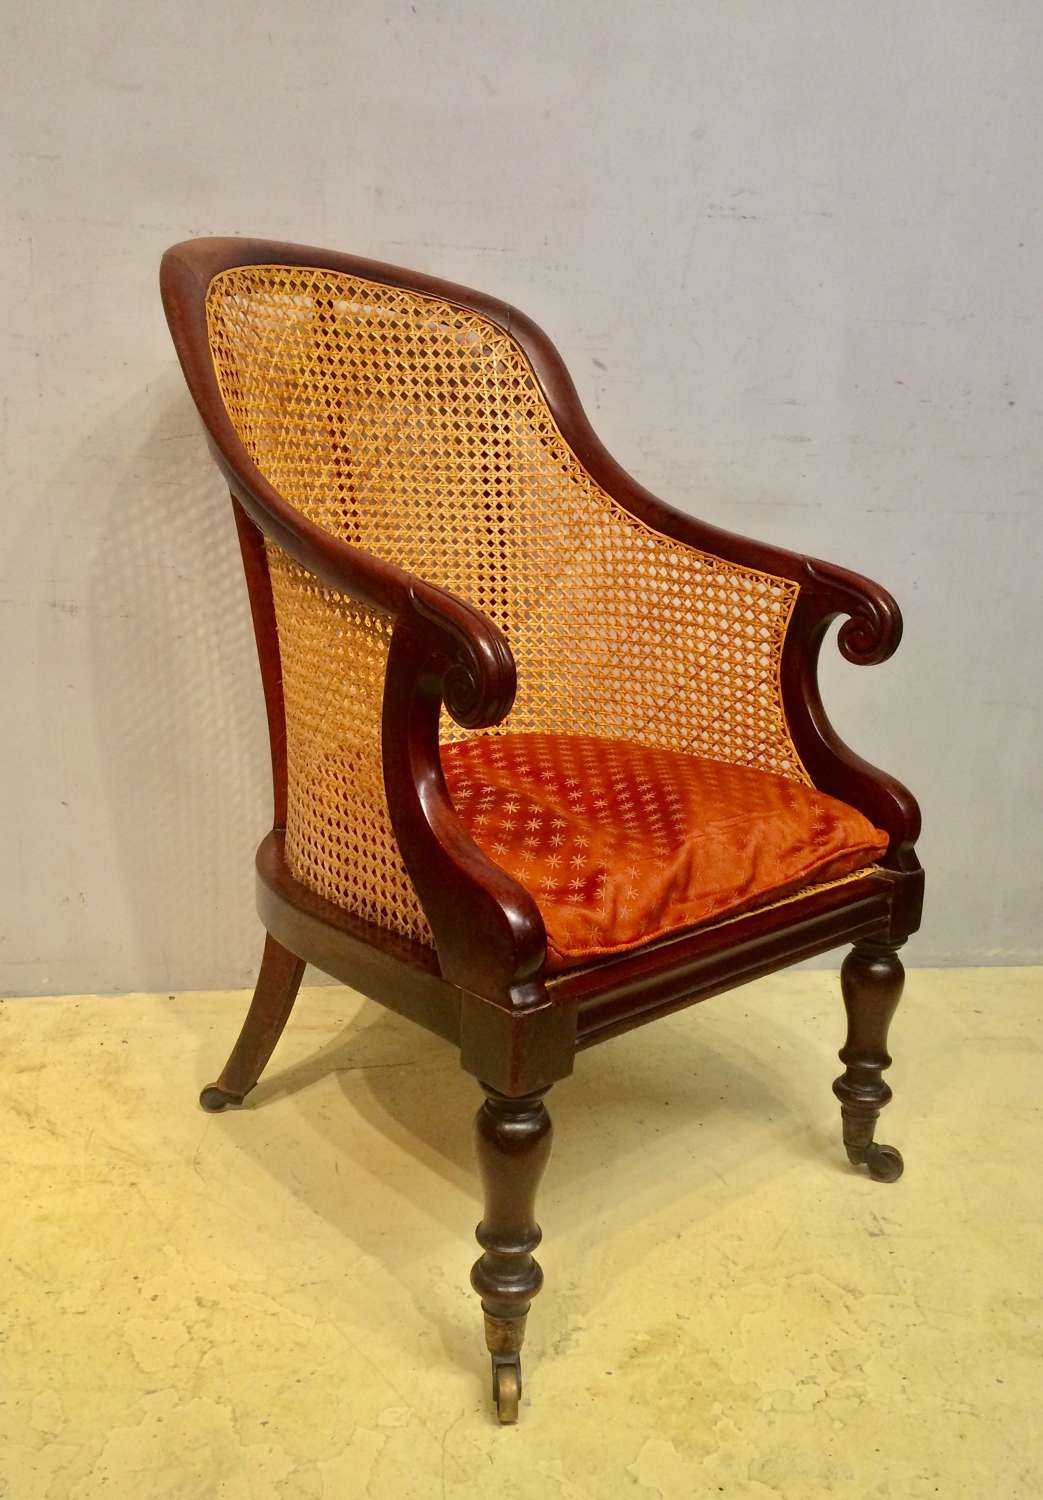 Late Regency mahogany tub chair.